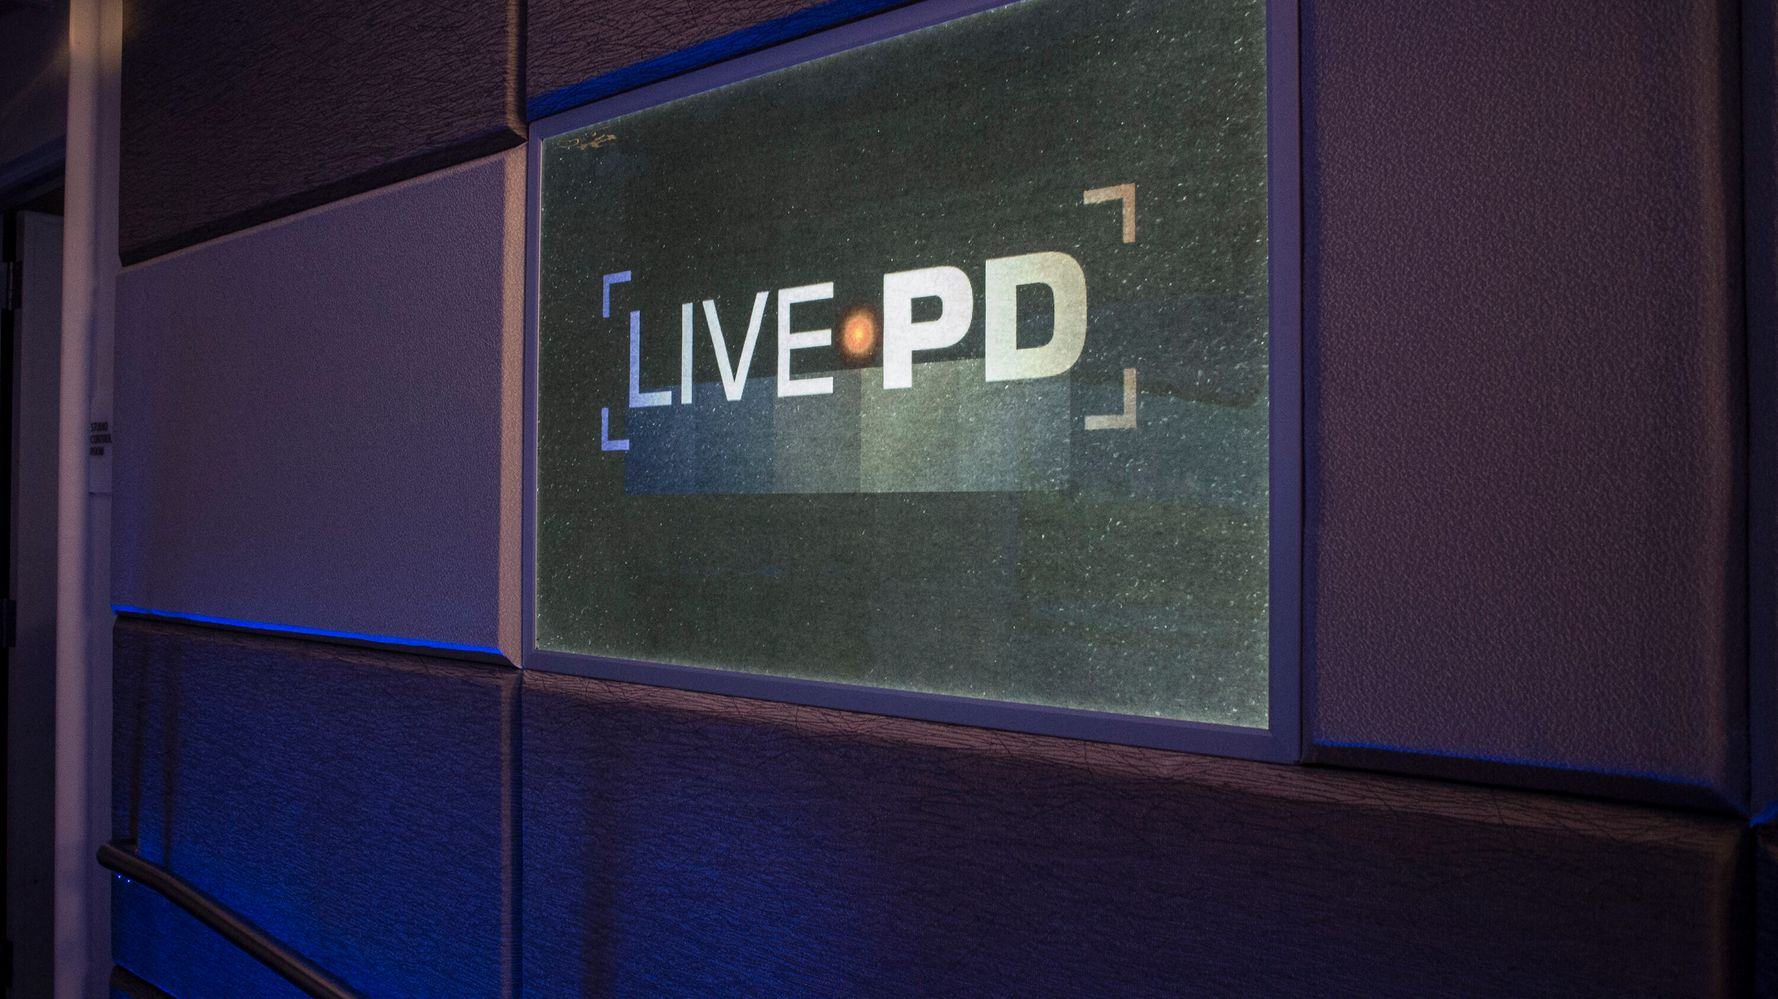 Shadowy Man's Death In Police Custody Used to be Filmed For 'Live PD,' Prosecutor Says thumbnail